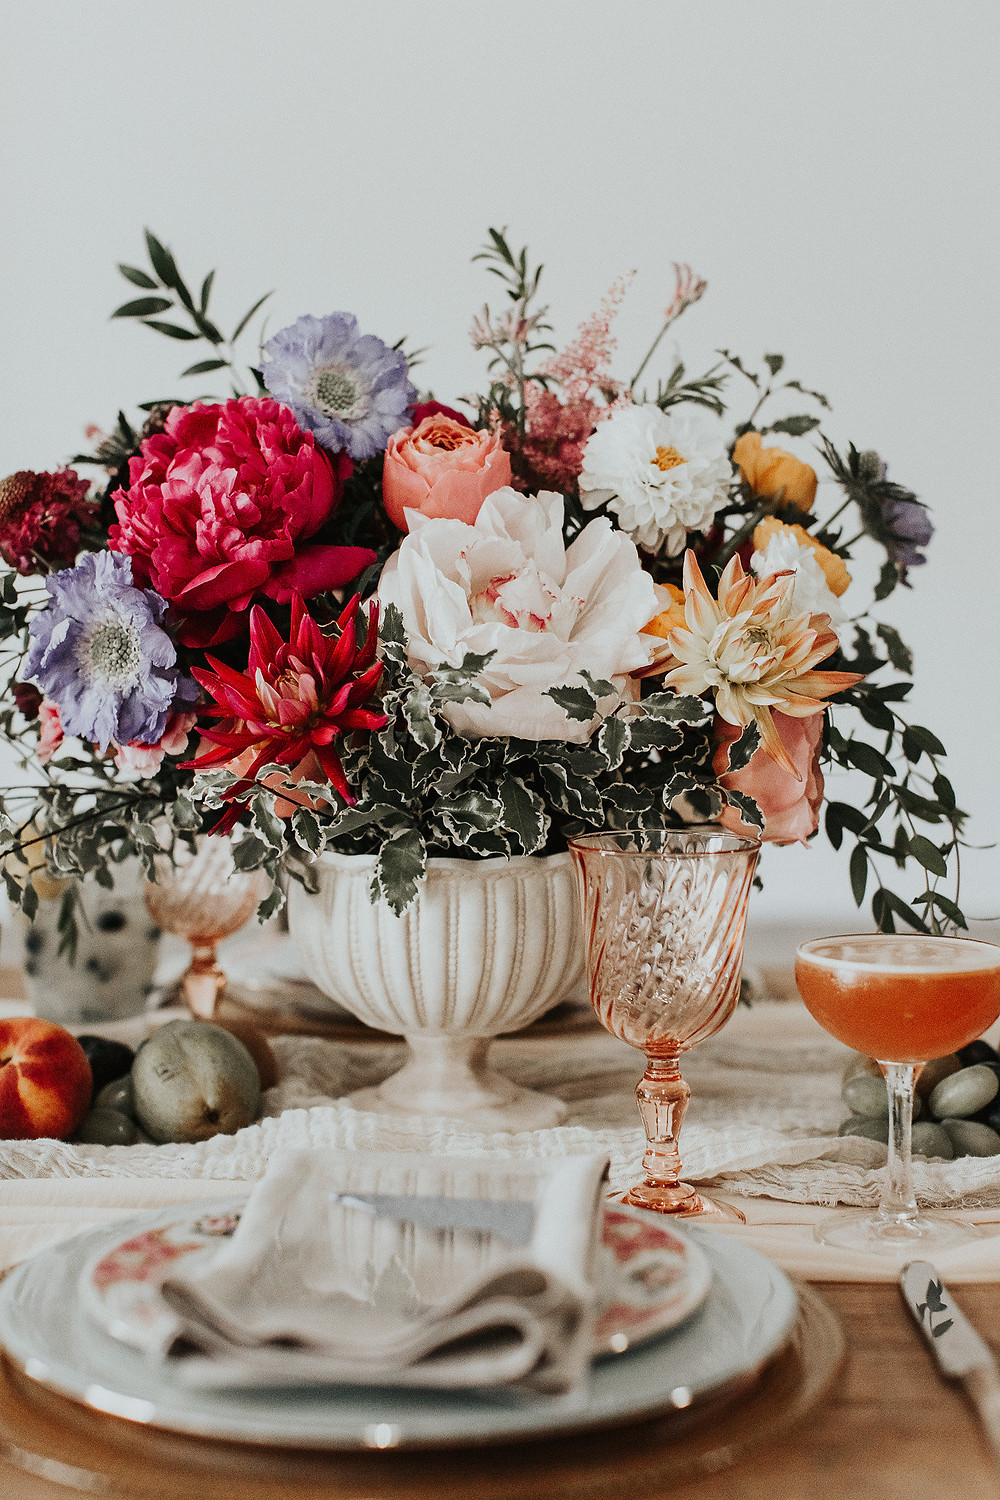 Beautiful saturated floral arrangement and dining table